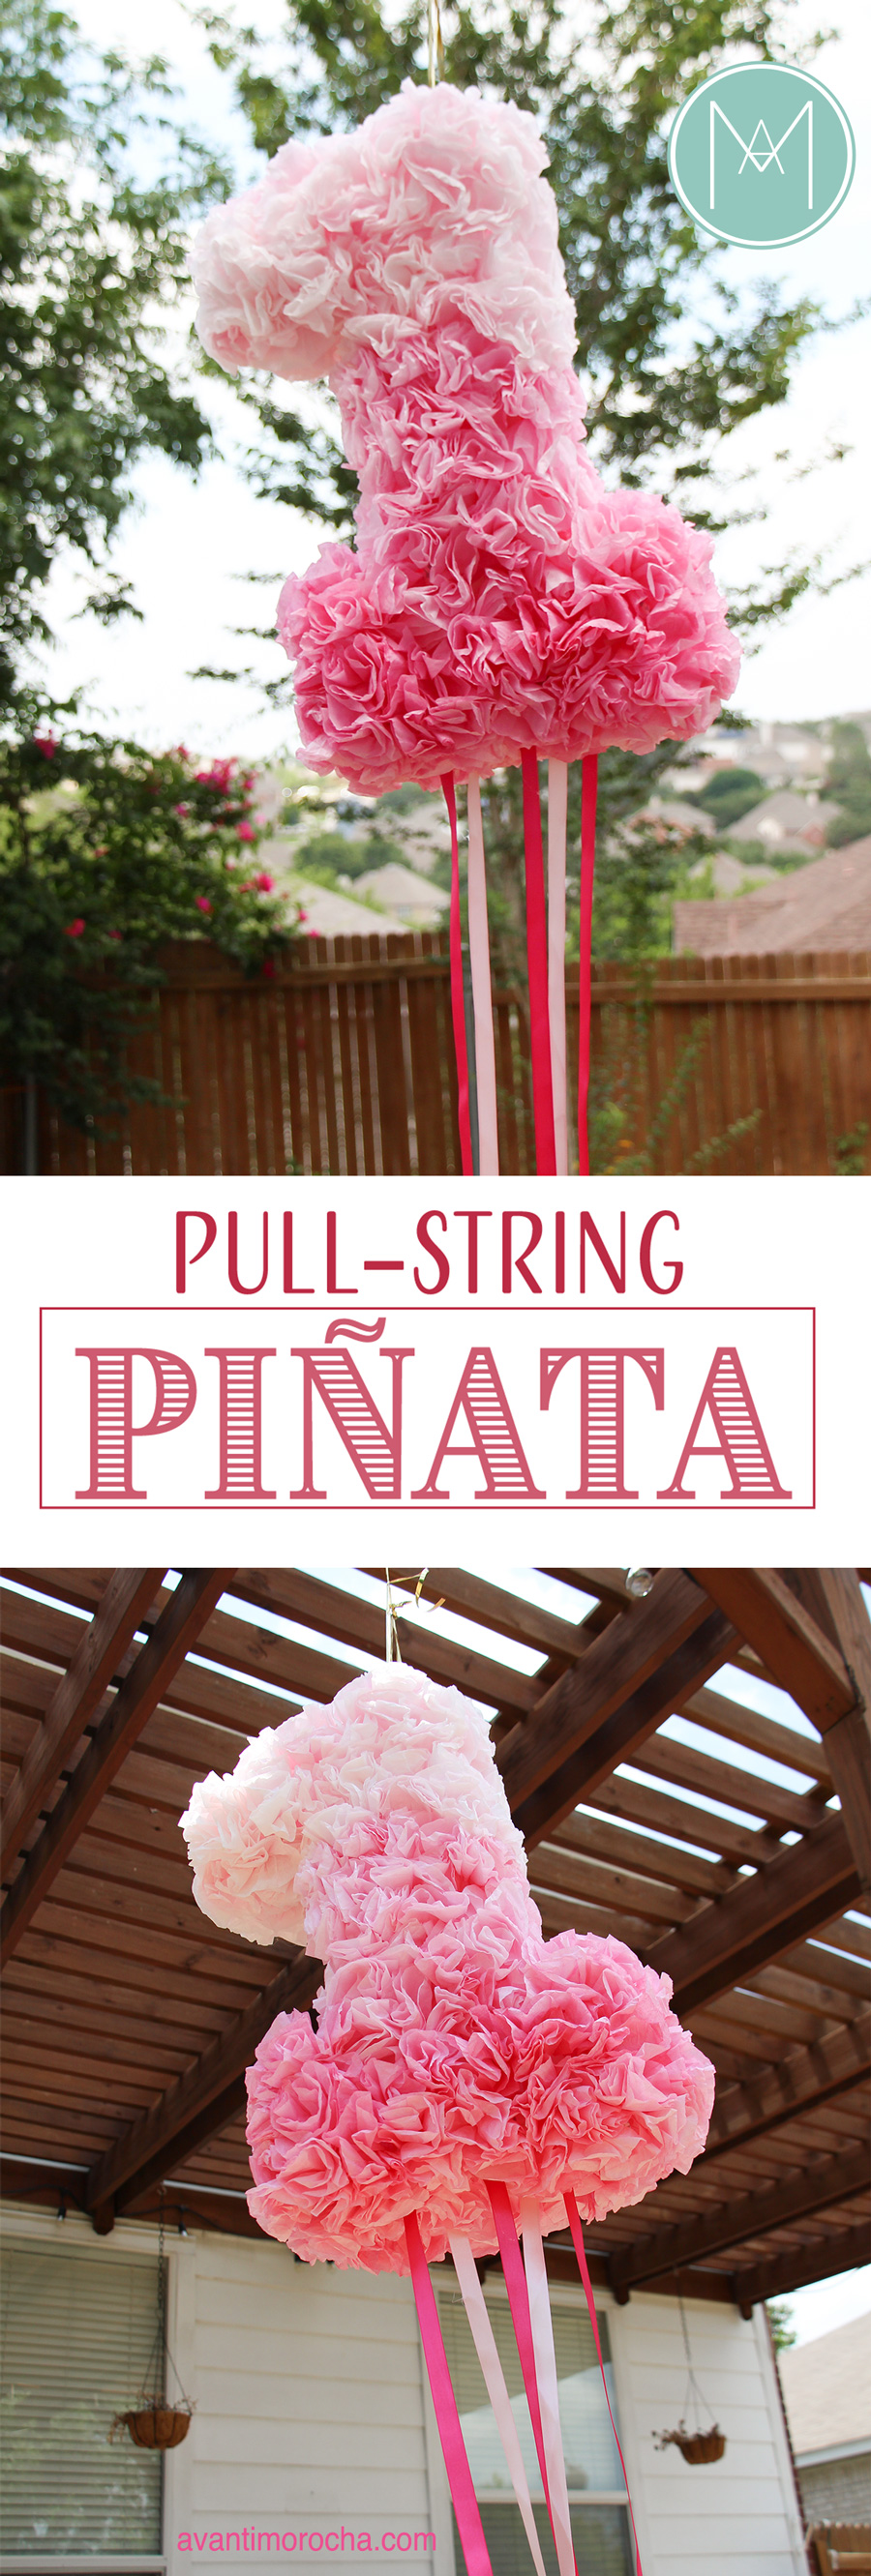 DIY Pull-String Piñata with coffee filters